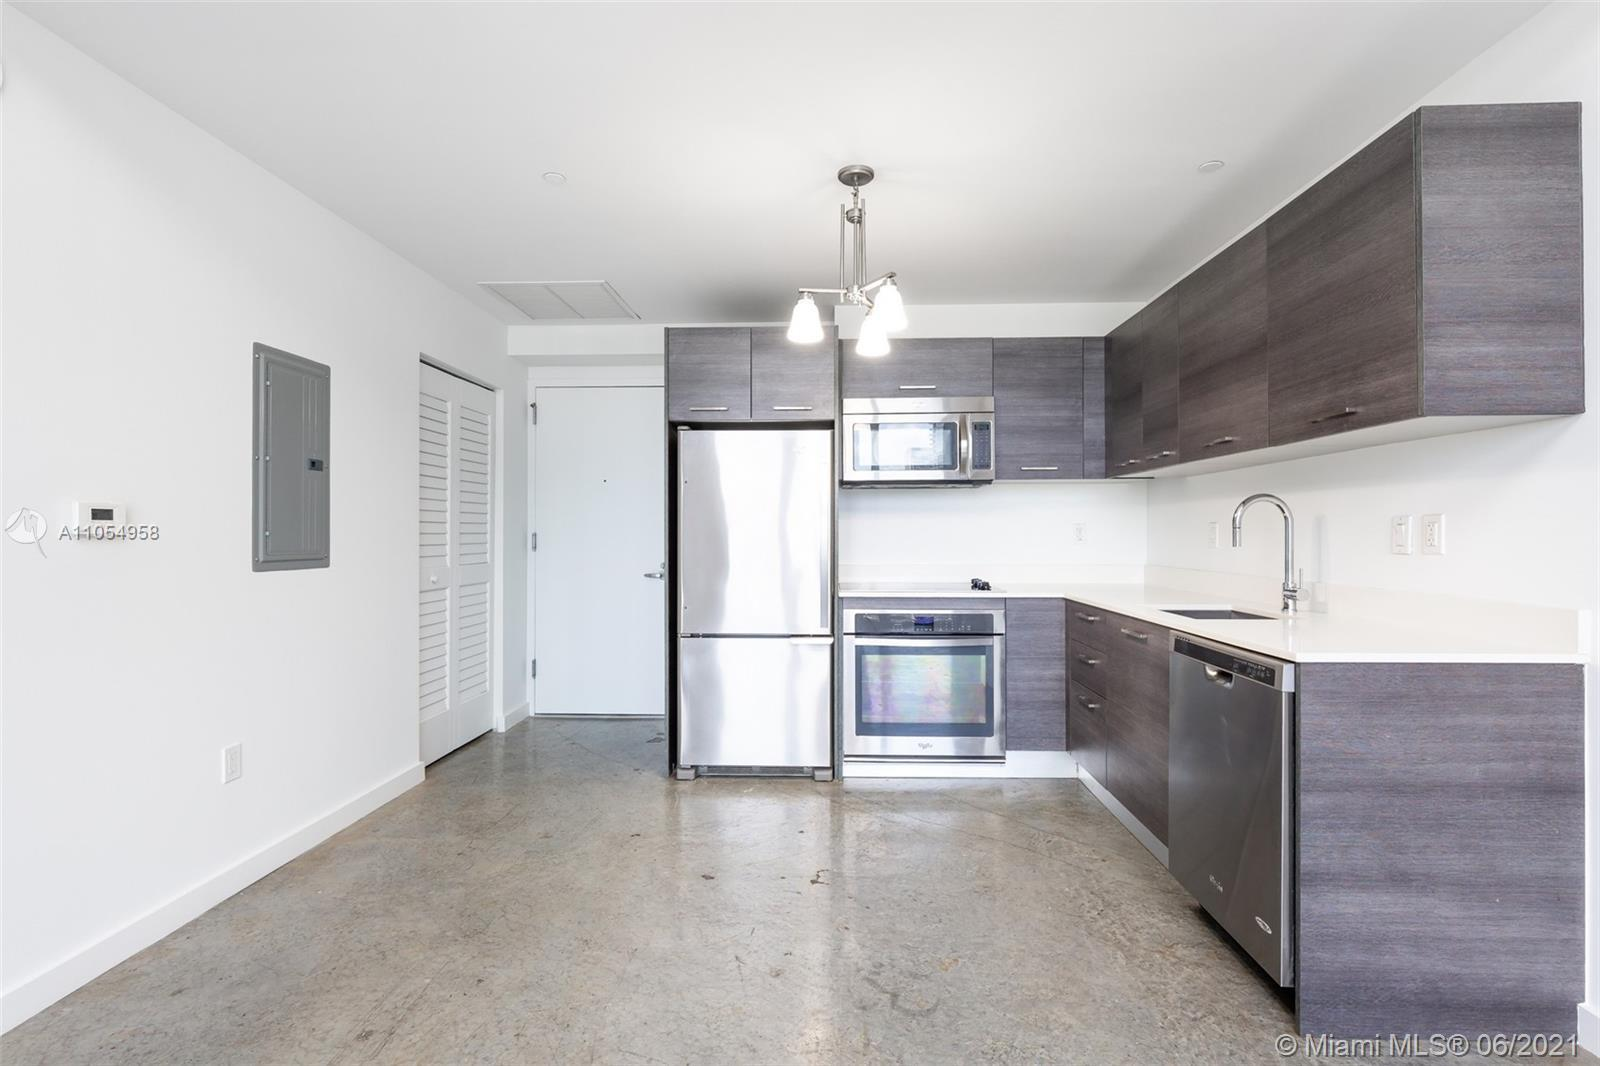 Loft-style condo with city views at Centro. This unit features kitchen with stainless steel Whirlpoo